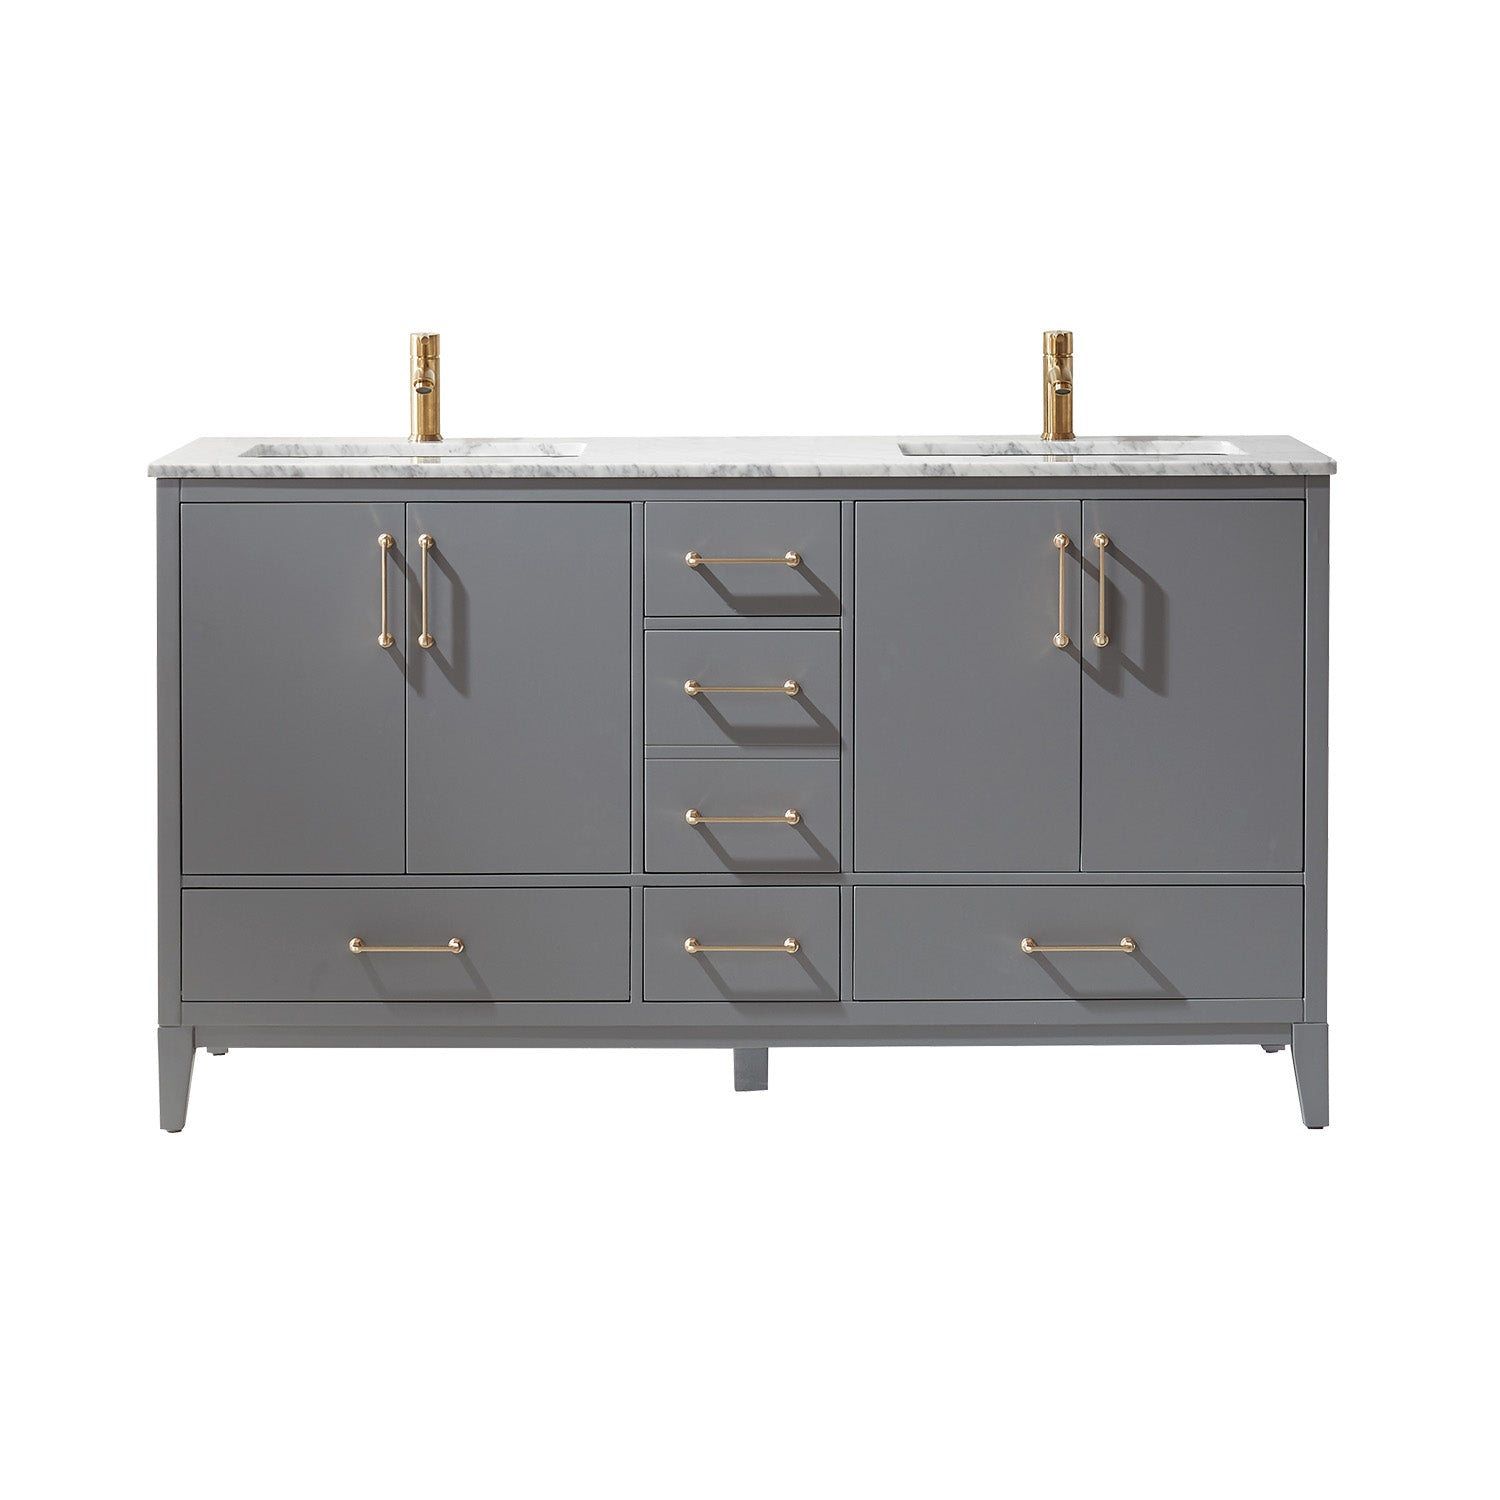 "Sutton 60"" Double Bathroom Vanity Set in Gray and Carrara White Marble Countertop without Mirror"